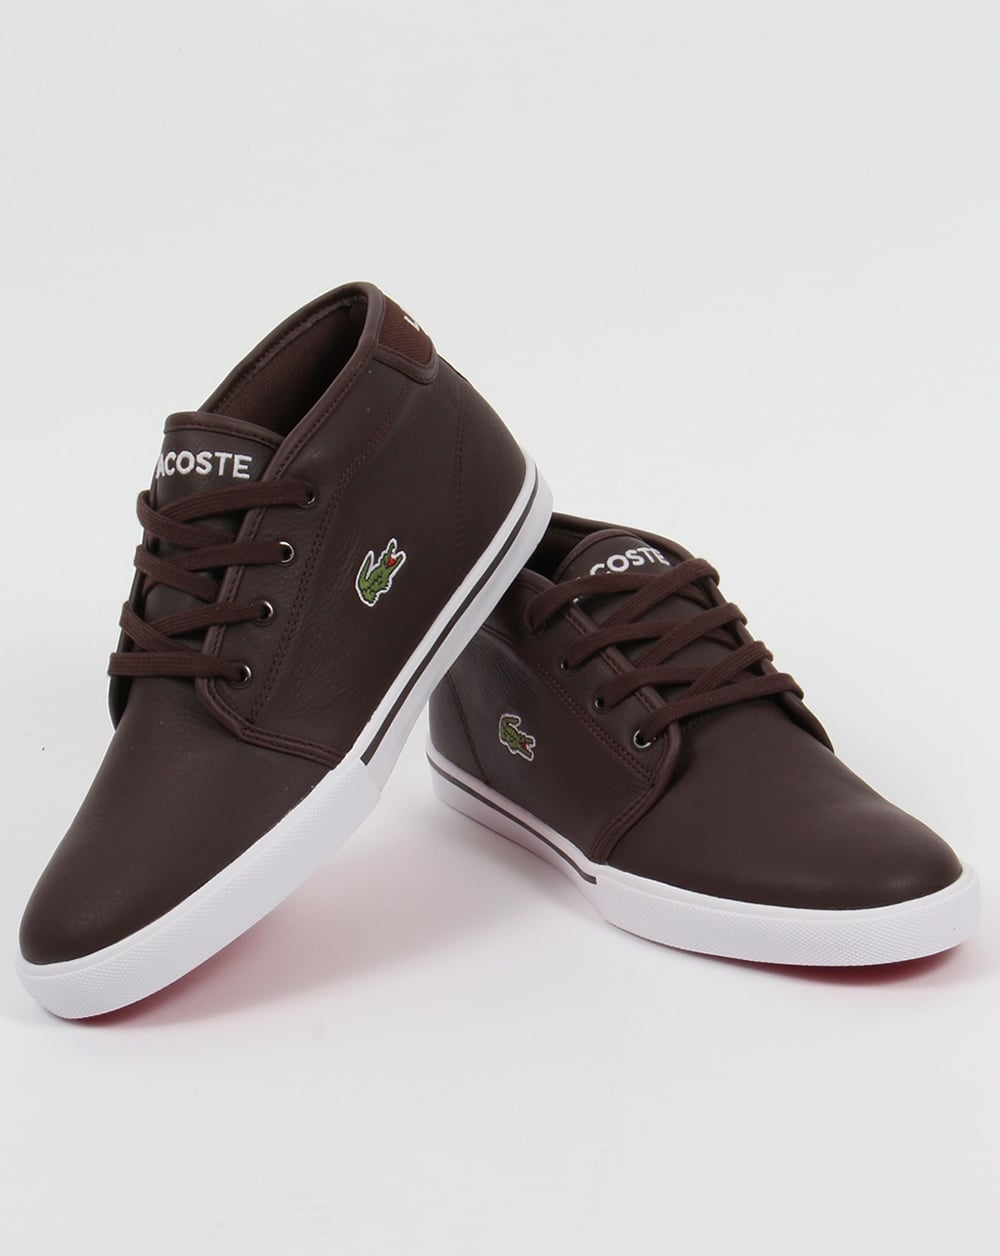 d56e4ec5de15 Lacoste Ampthill Leather Trainers Dark Brown